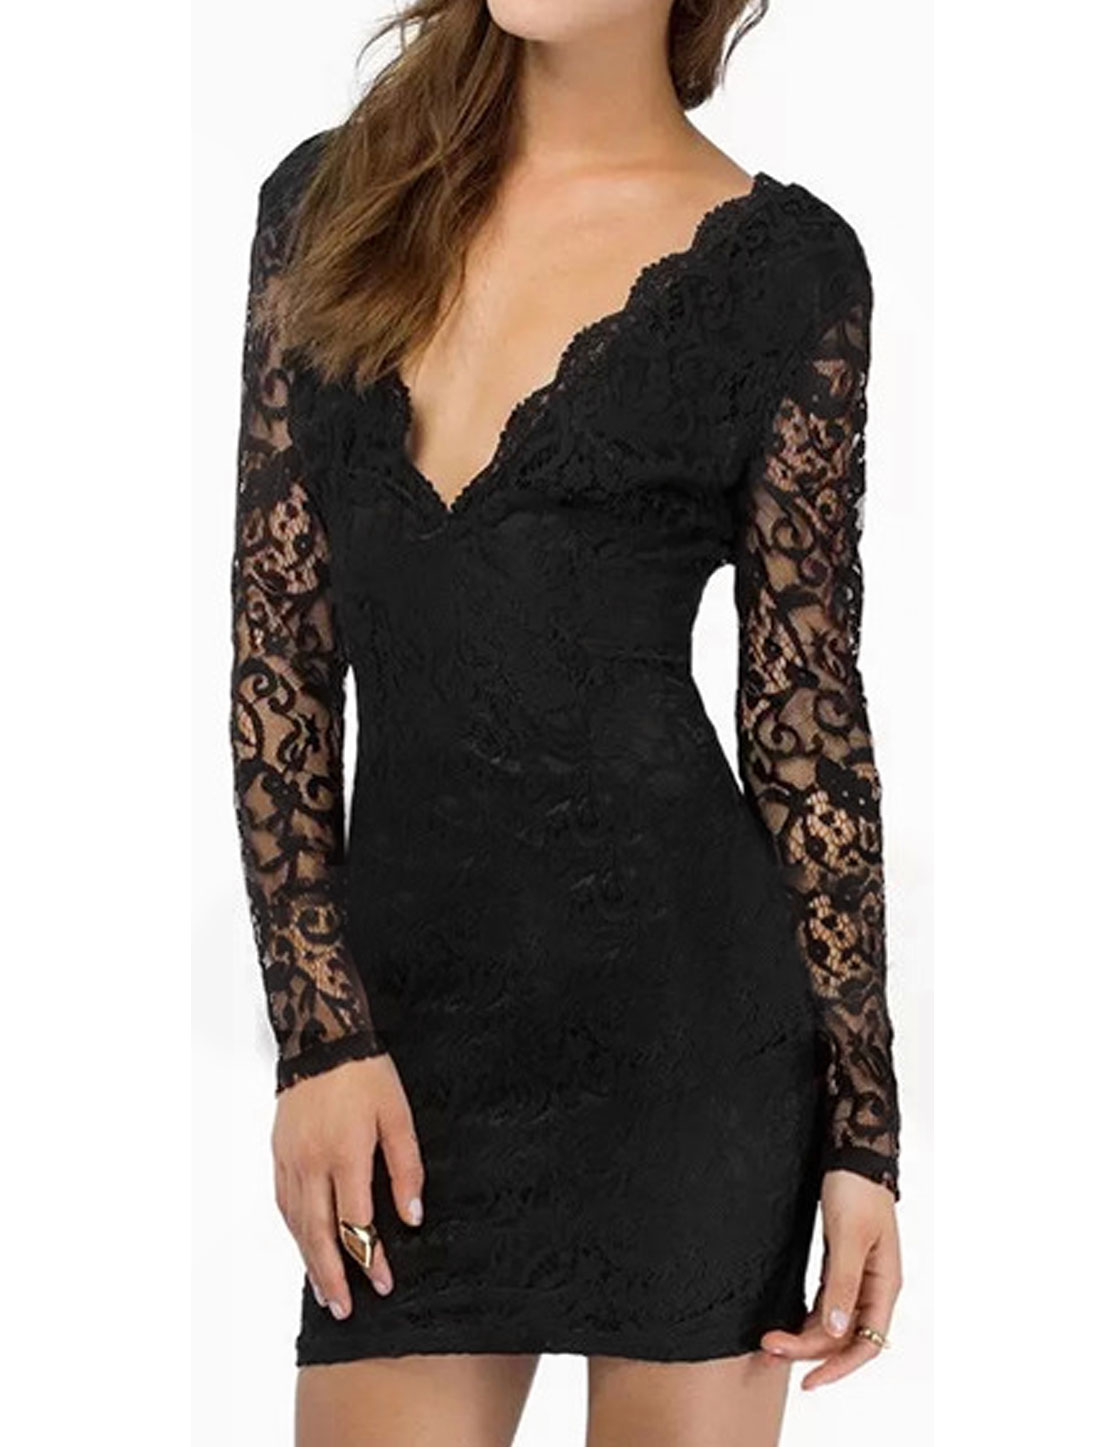 Women Scalloped V Back Long Sleeves Lace Skinny Dress Black M